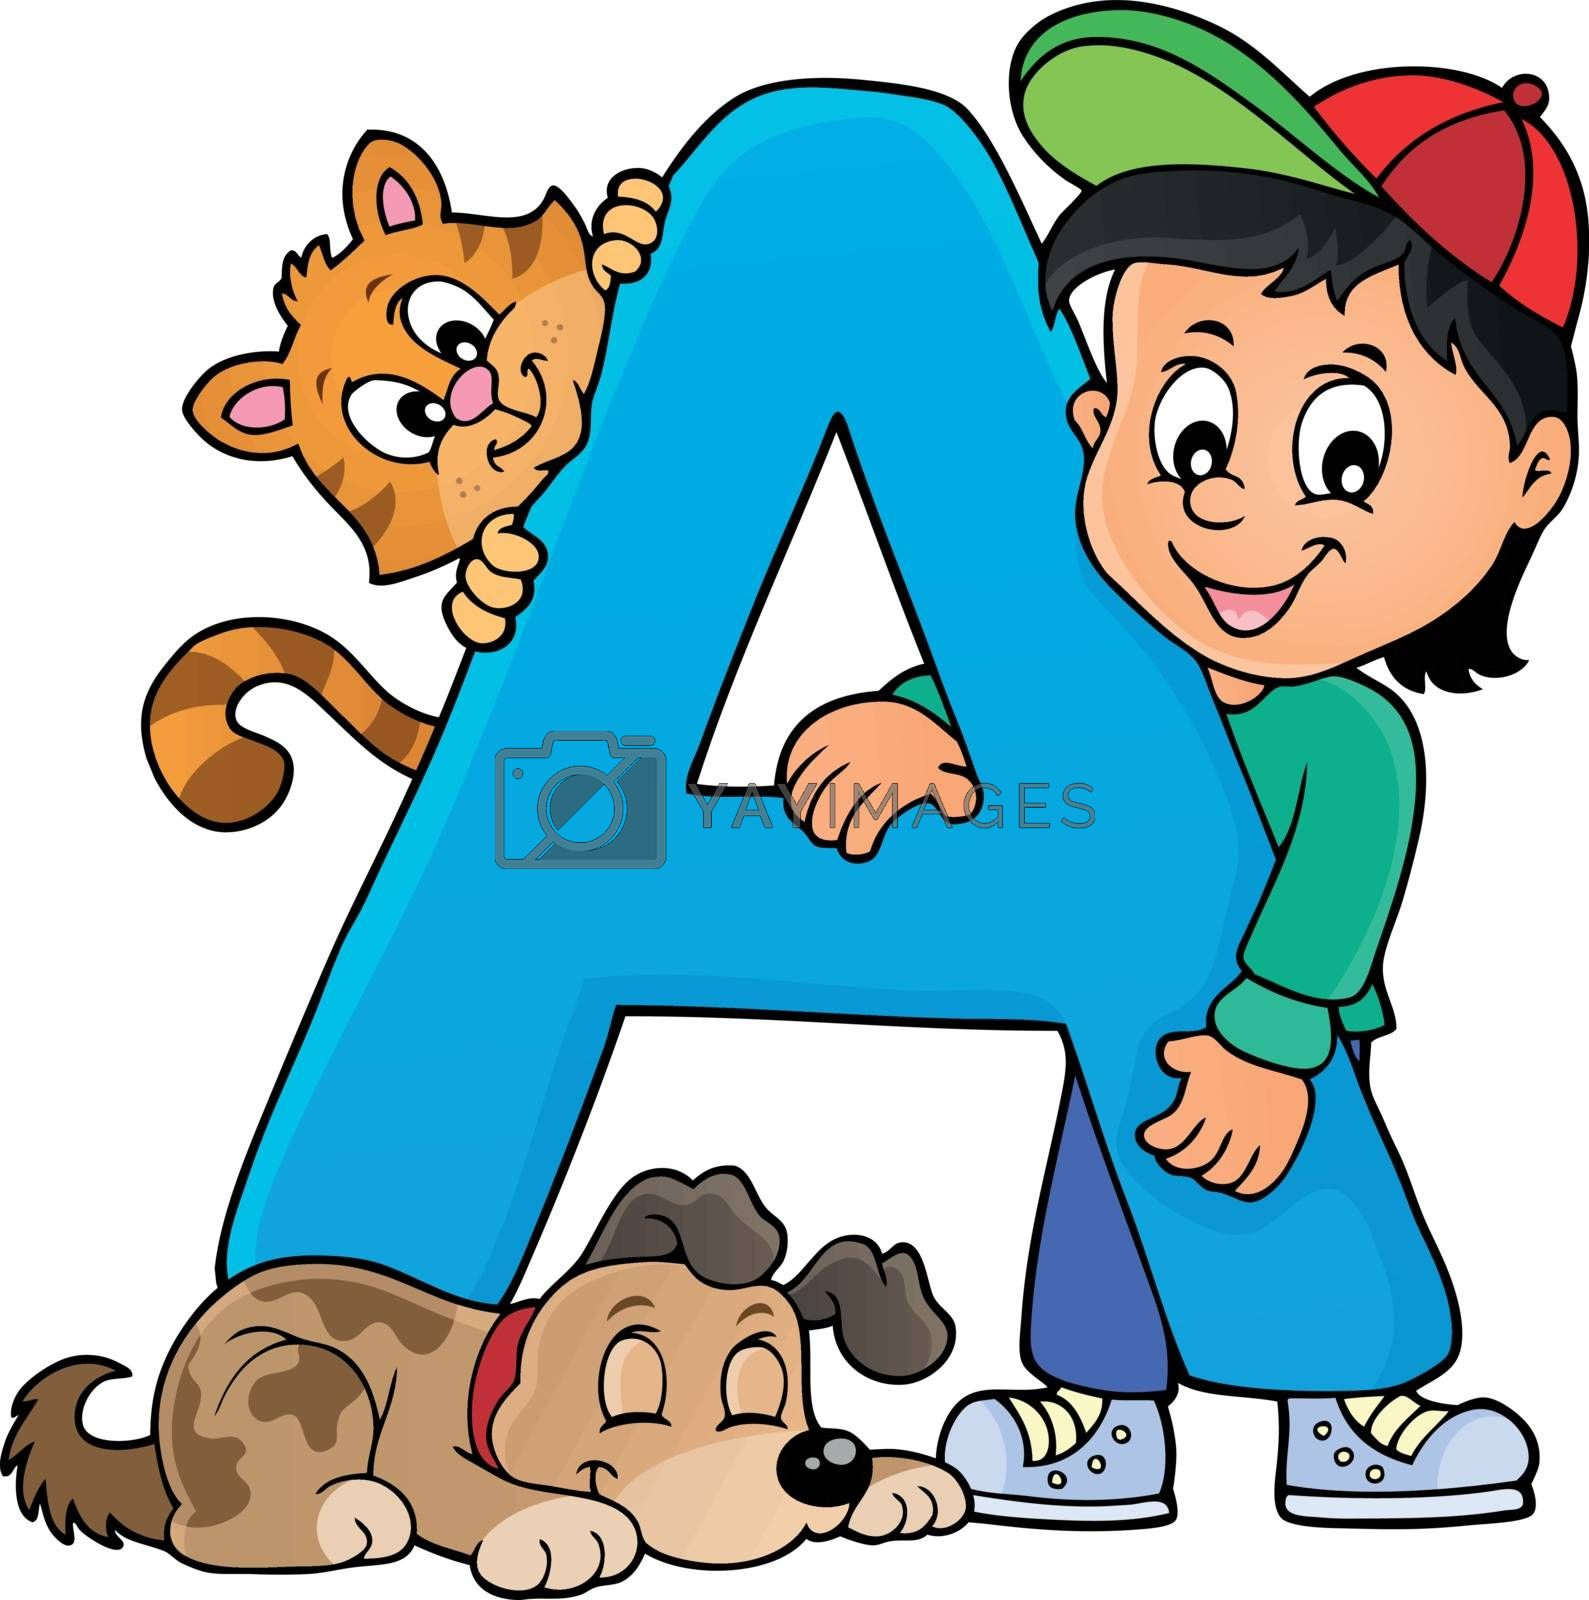 Boy and pets with letter A - eps10 vector illustration.